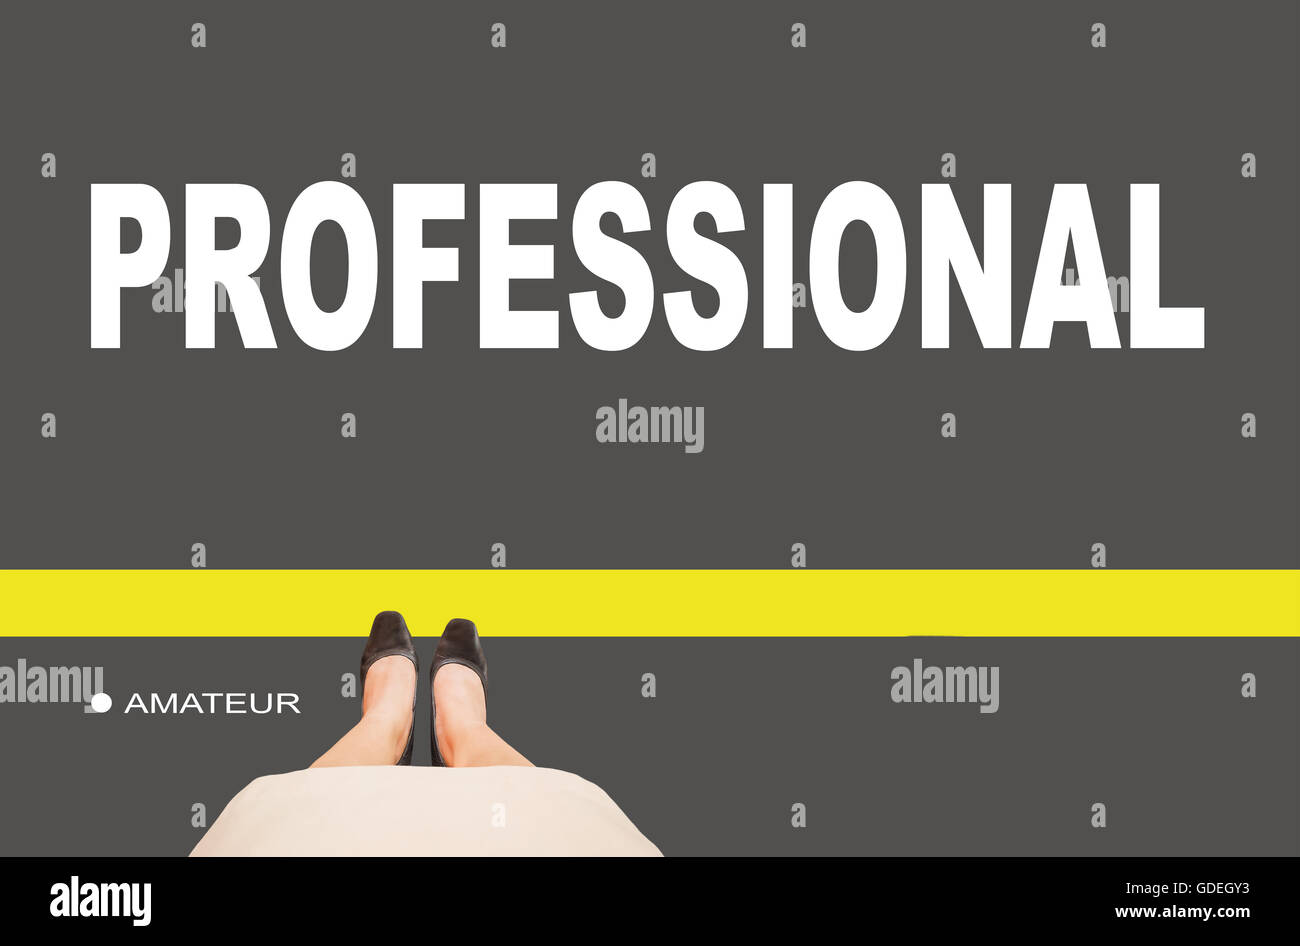 Business women leg standing on line with text amateur and professional on ground, concept of business or work progression - Stock Image